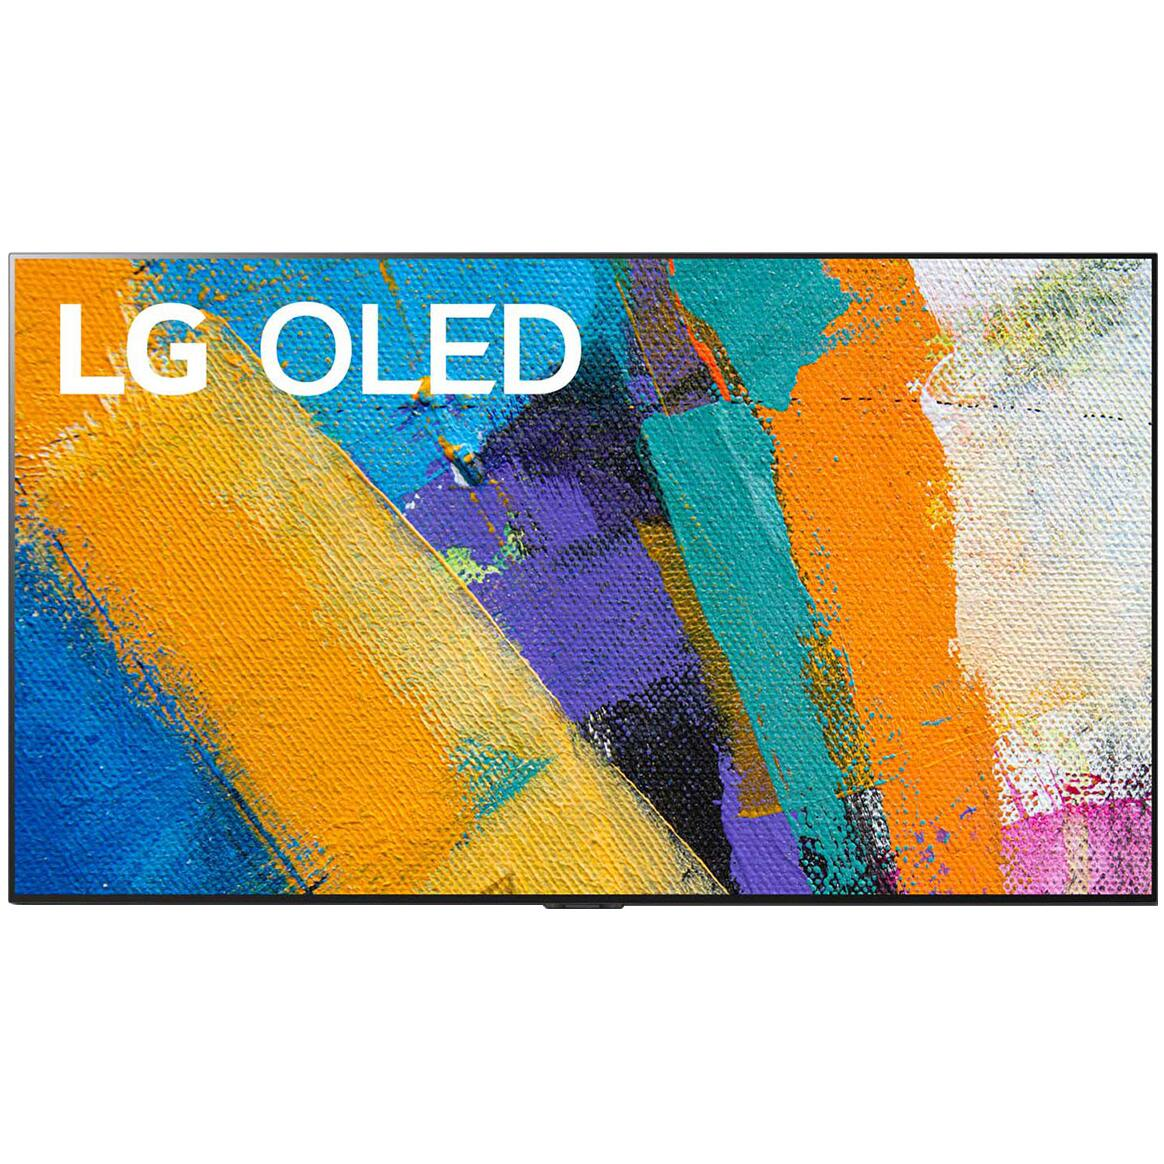 "LG OLED TV's: 65"" OLED65GXPUA + $250 Visa GC + BS-FN6 True Wireless Earbuds + 1-Year Ext War $2497, 77"" OLED77GXPUA + $400 Visa GC $3997 + free s/h"